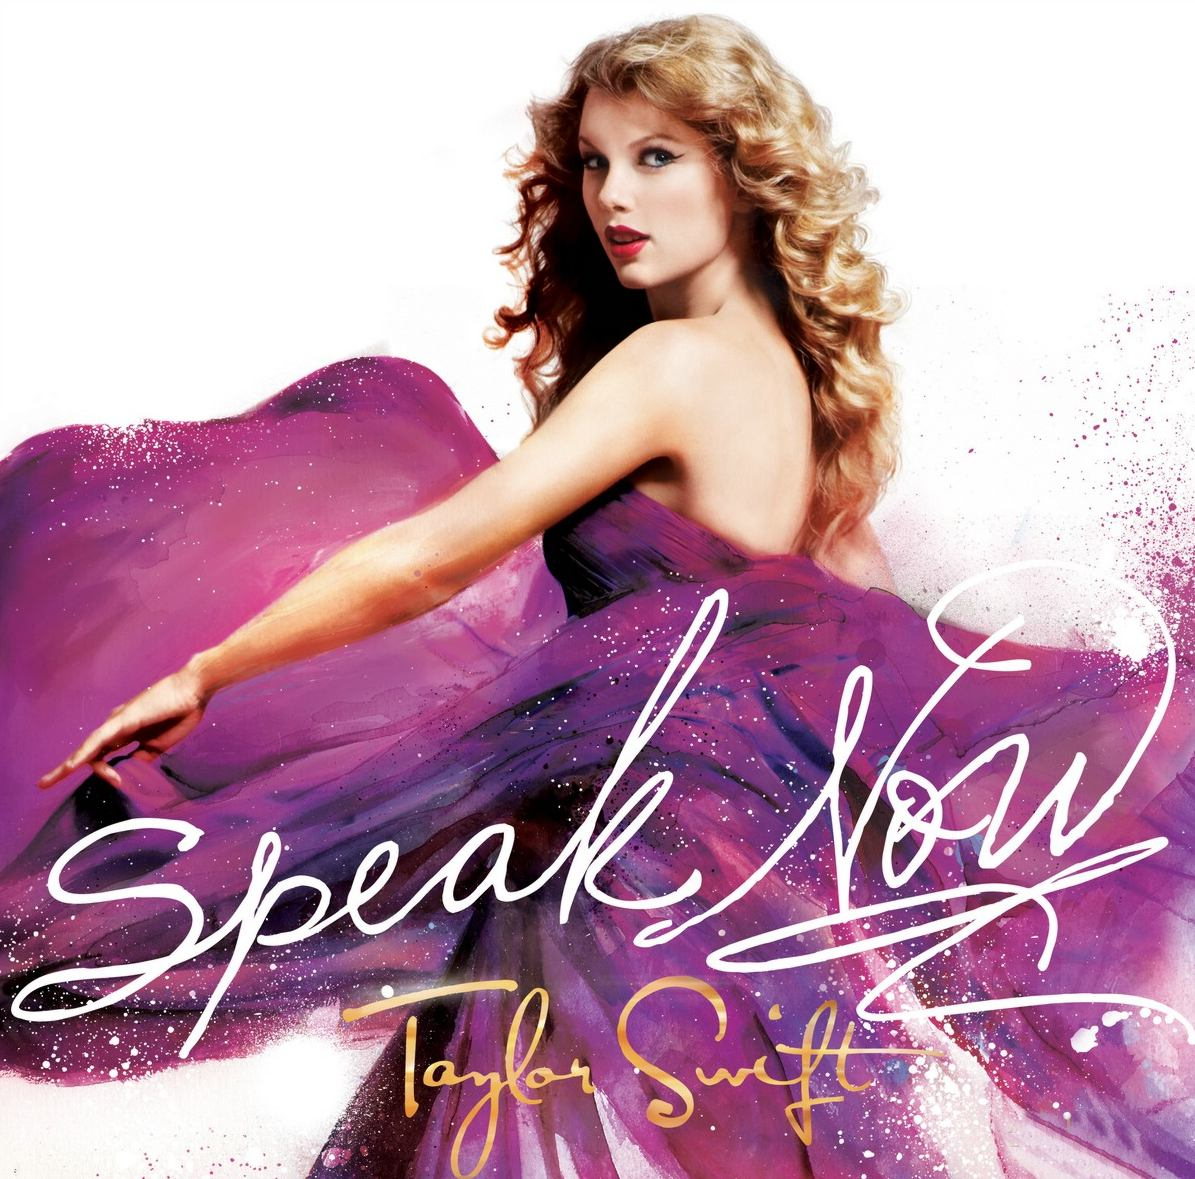 http://2.bp.blogspot.com/_O1tTd3A8WVw/TNbIEG6h7qI/AAAAAAAAACE/jUJPsxR6KNM/s1600/taylor-swift-speak-now-01.jpg